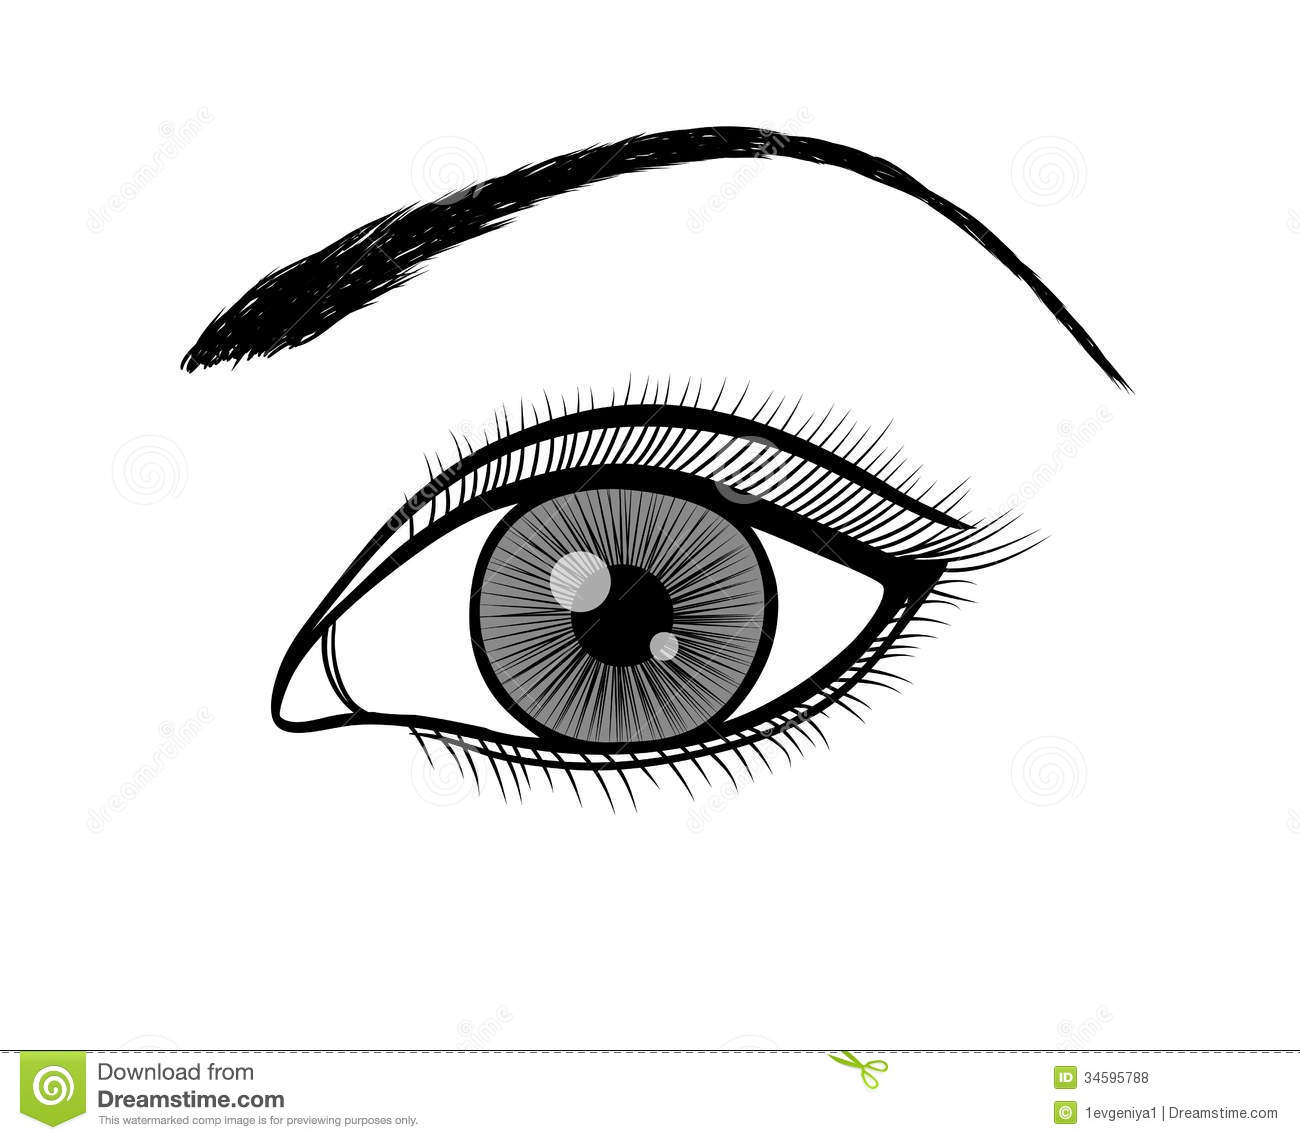 Background Black And White Polygon 1999331 besides Coole Bilder Zum Zeichnen additionally Life Line Symbol Heart Vector 17977731 moreover Royalty Free Stock Photos Monochrome Black White Outline Female Eye Many Similarities To Authors Profile Image34595788 besides Surgical gown. on beauty illustration